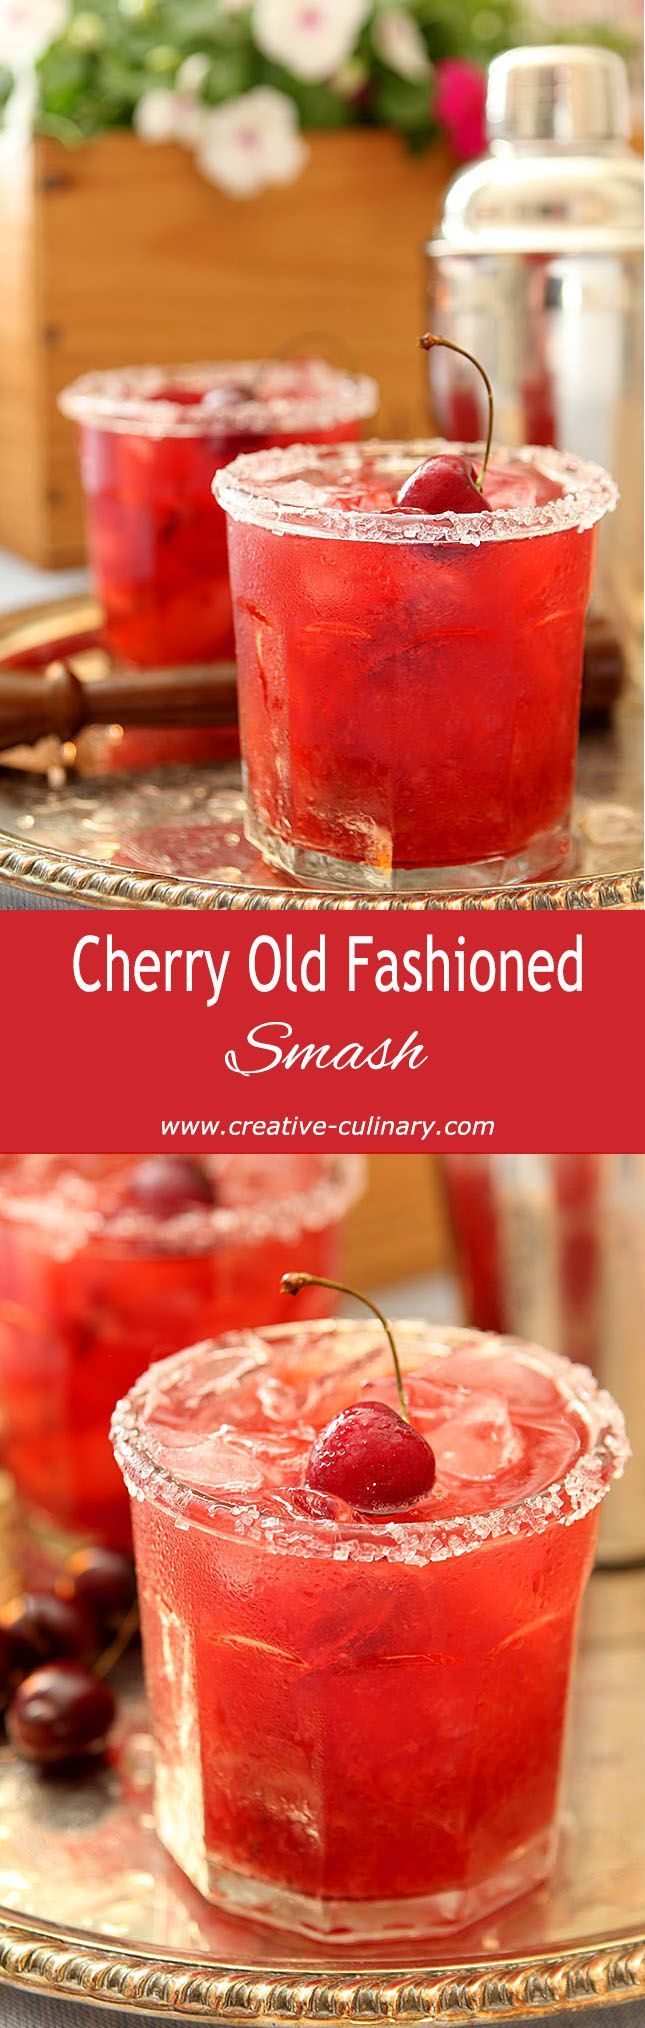 This Cherry Old Fashioned Smash is a favorite during cherry season; make sure you grab some since they are soon gone and this one should not be missed! via @creativculinary